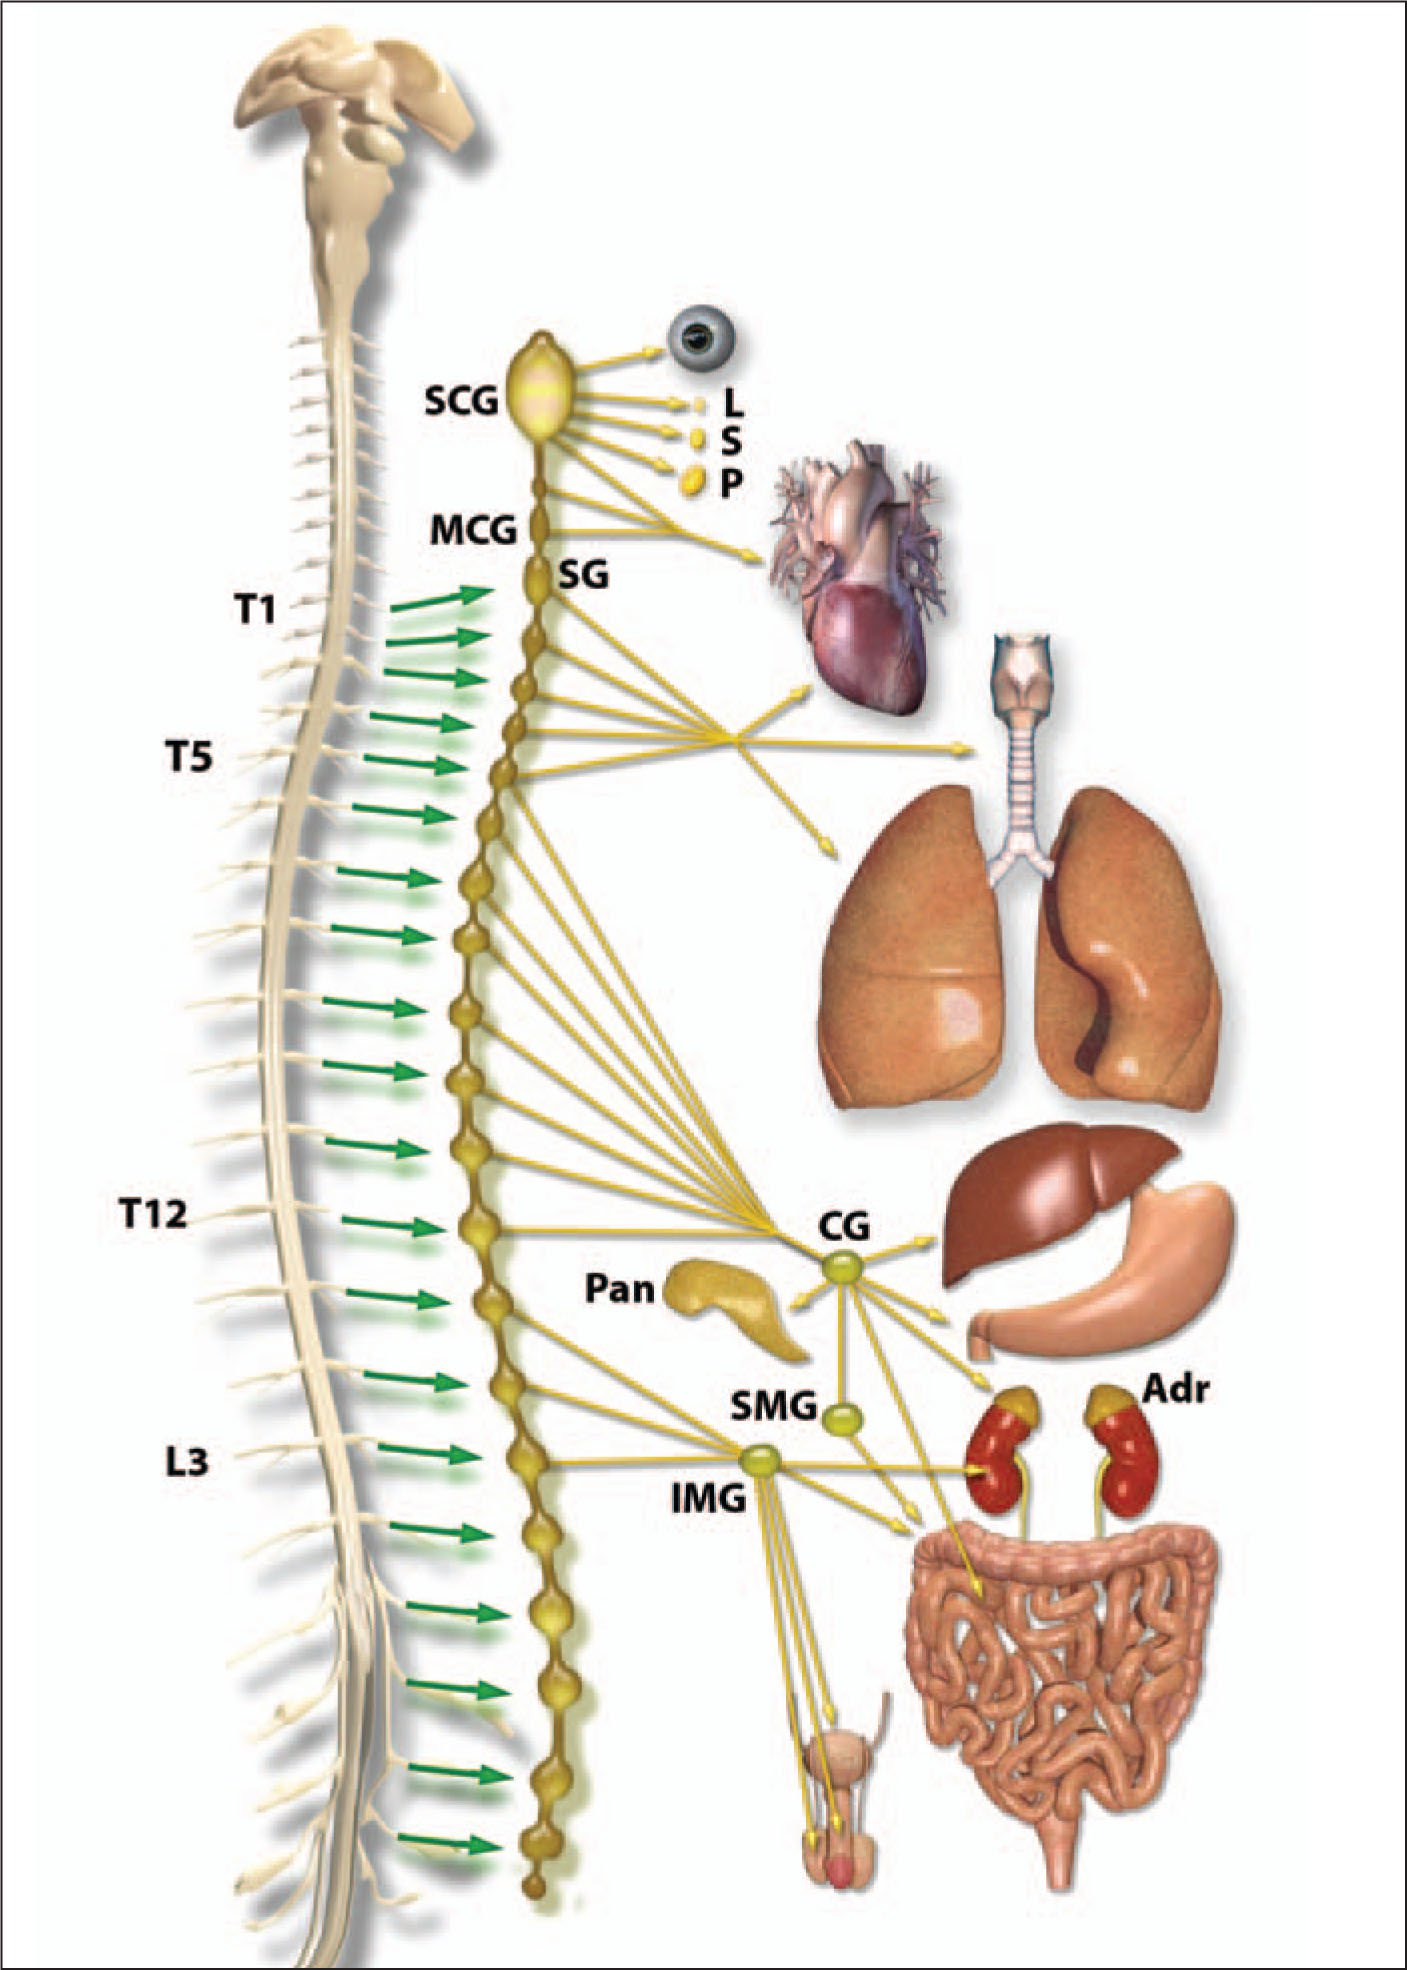 The Sympathetic Nervous System. The Diagram Shows the Thoracolumbar Projection Between T1 and L2 that Forms the Core of the Sympathetic System. Sympathetic Neurons are Located in the Intermediolateral Column of the Spinal Cord. Preganglionic Fibers from the Intermediolateral Column Project to Paravertebral, or Sympathetic Trunk Ganglia. Fibers from These Ganglia Either Innervate Target Organs Directly or Synapse on Prevertebral Ganglia Before Reaching Target Organs. SCG: Superior Cervical Ganglion; L: Lachrymal Gland; S: Salivary Gland; P: Parotid Gland; MCG: Middle Cervical Ganglion; SG: Stellate Ganglion; CG: Celiac Ganglion; Pan-Pancreas; SMG: Superior Mesenteric Ganglion; Adr: Adrenal Gland; IMG: Inferior Mesenteric Ganglion; III: Cranial Nerve III (oculomotor Nerve); VII: Cranial Nerve VII (facial Nerve); IX: Cranial Nerve IX (glossopharyngeal Nerve); X: Cranial Nerve X (vagus Nerve). A Note from the Editors: All Illustrations in This Article Have Been Created by George I. Viamontes, MD, PhD, for Specific Use in This Issue of Psychiatric Annals.